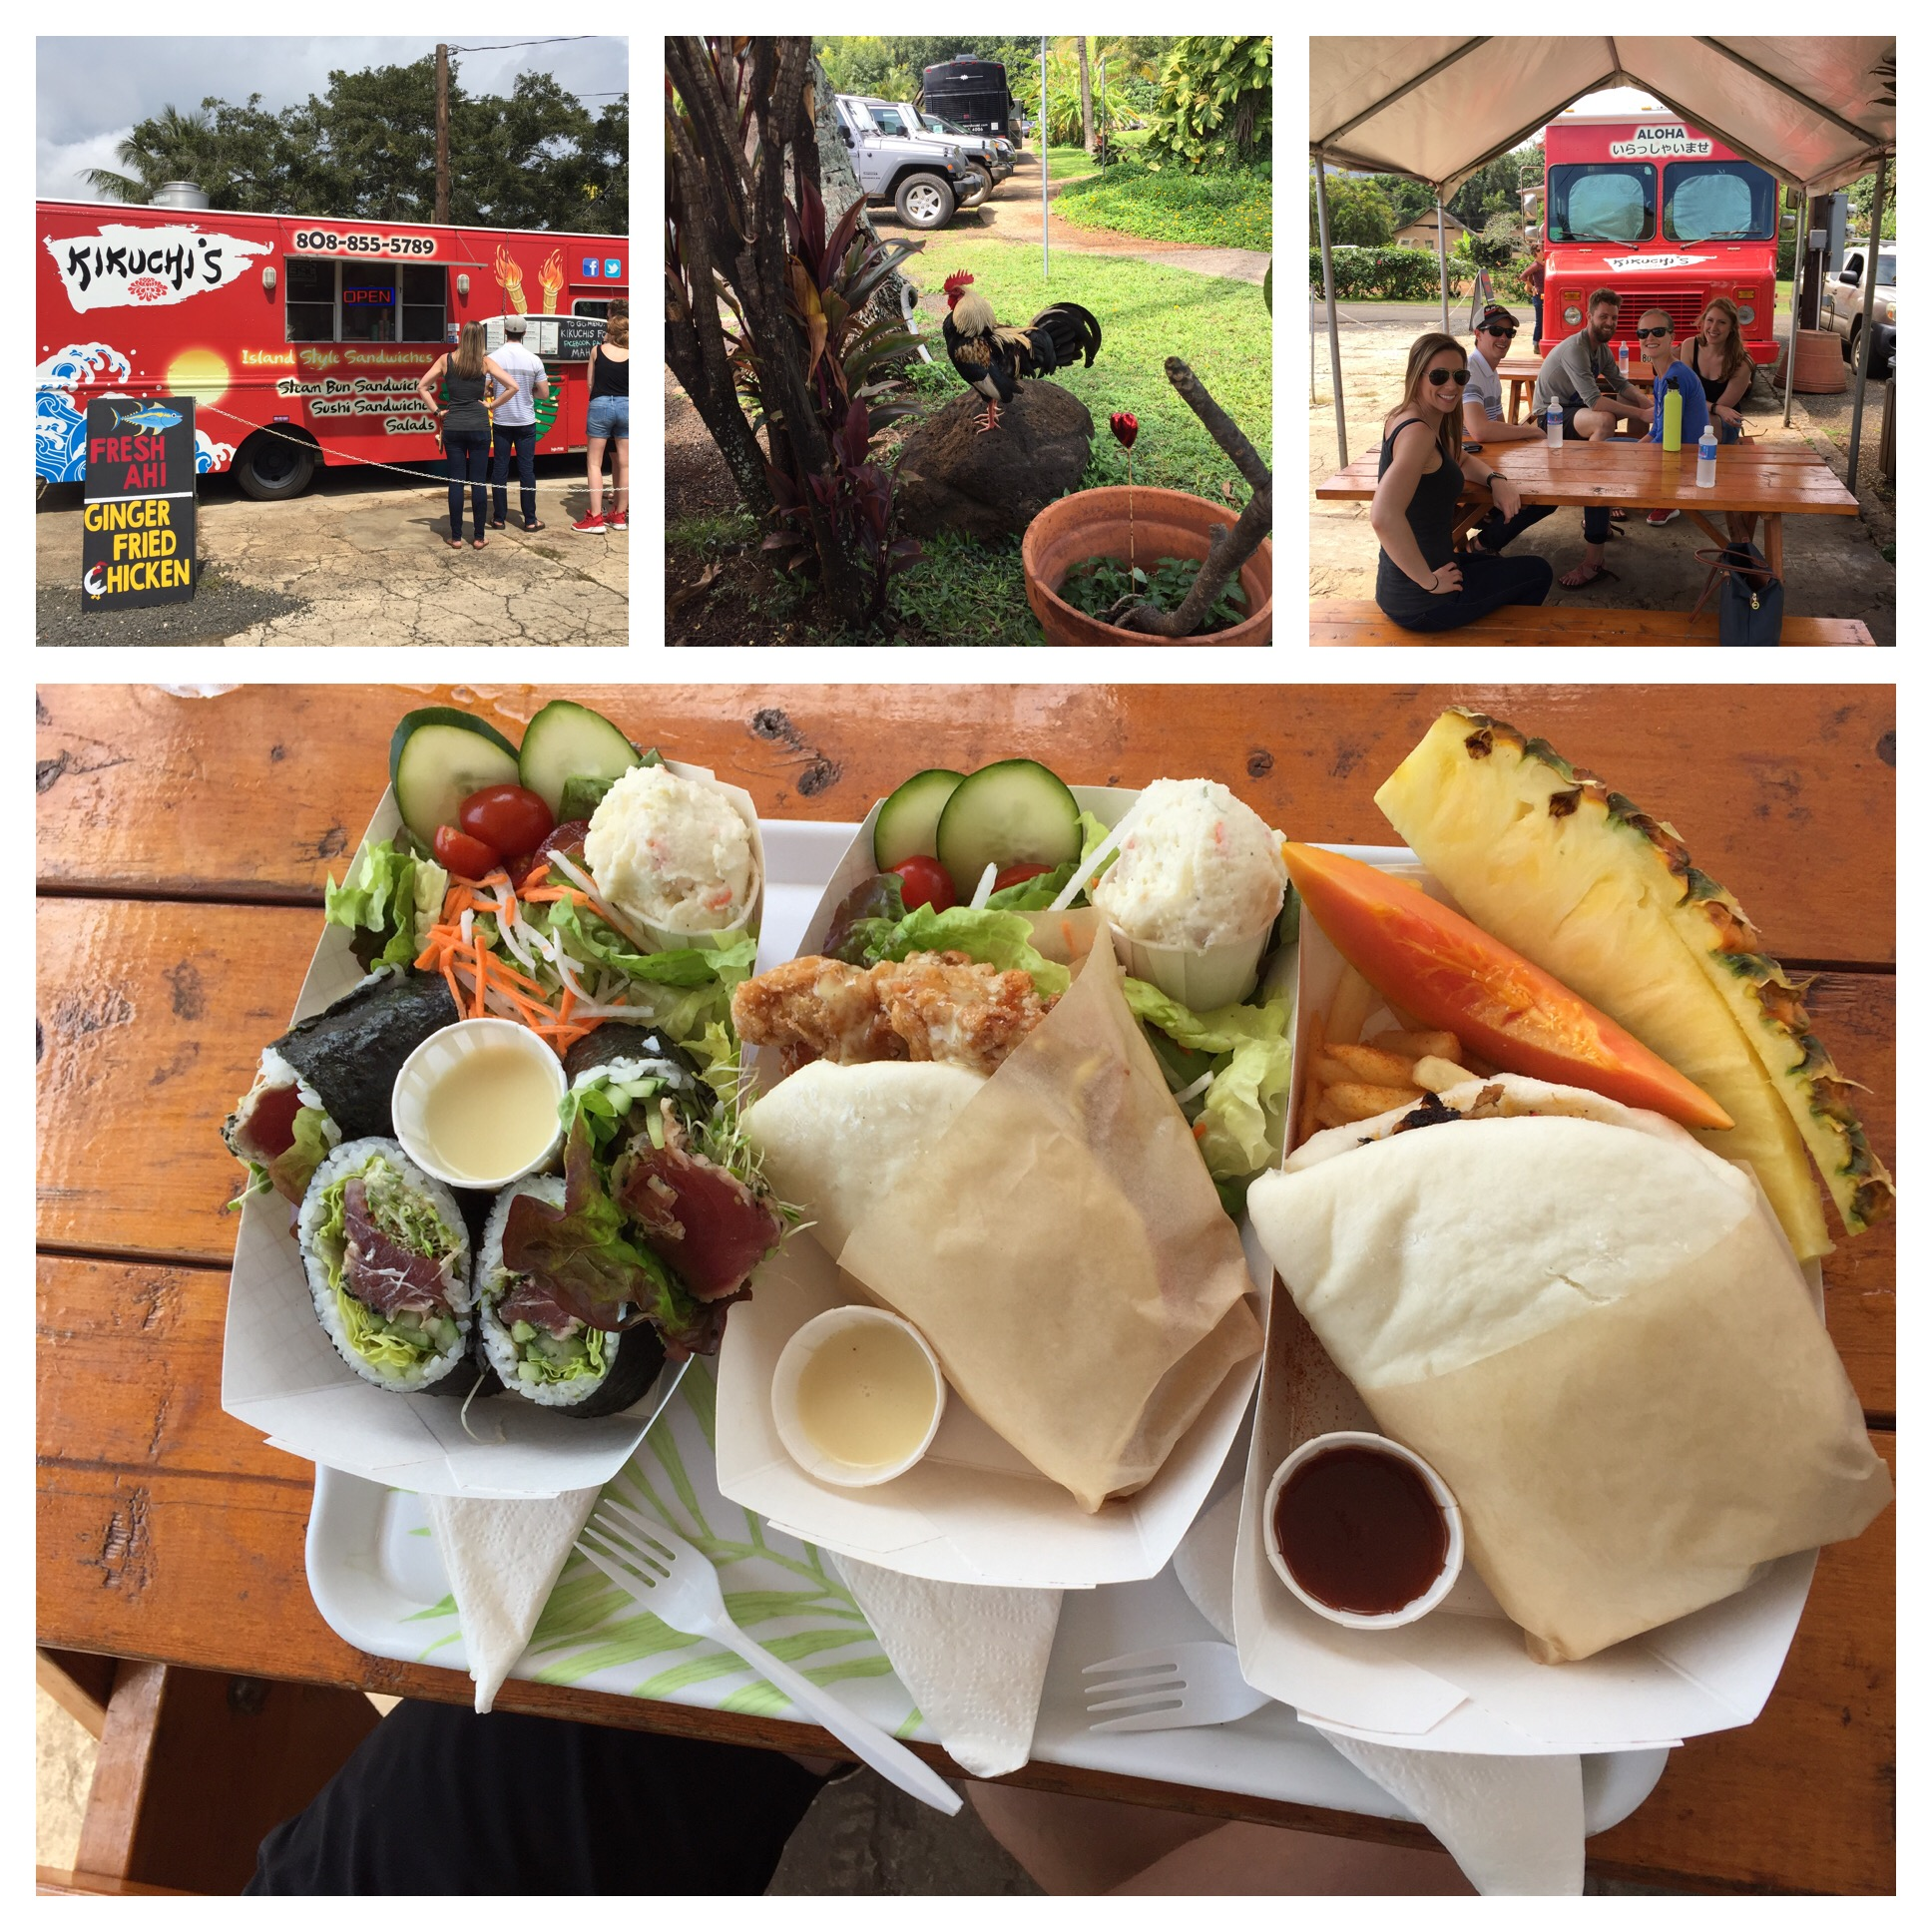 Steamed buns - one with Ginger Fried Chicken and the other with Pulled Pork. Also fresh Ahi Rolls. That tray is just what Tom and Anna ordered!!! And of course a friendly?? Rooster hanging around!